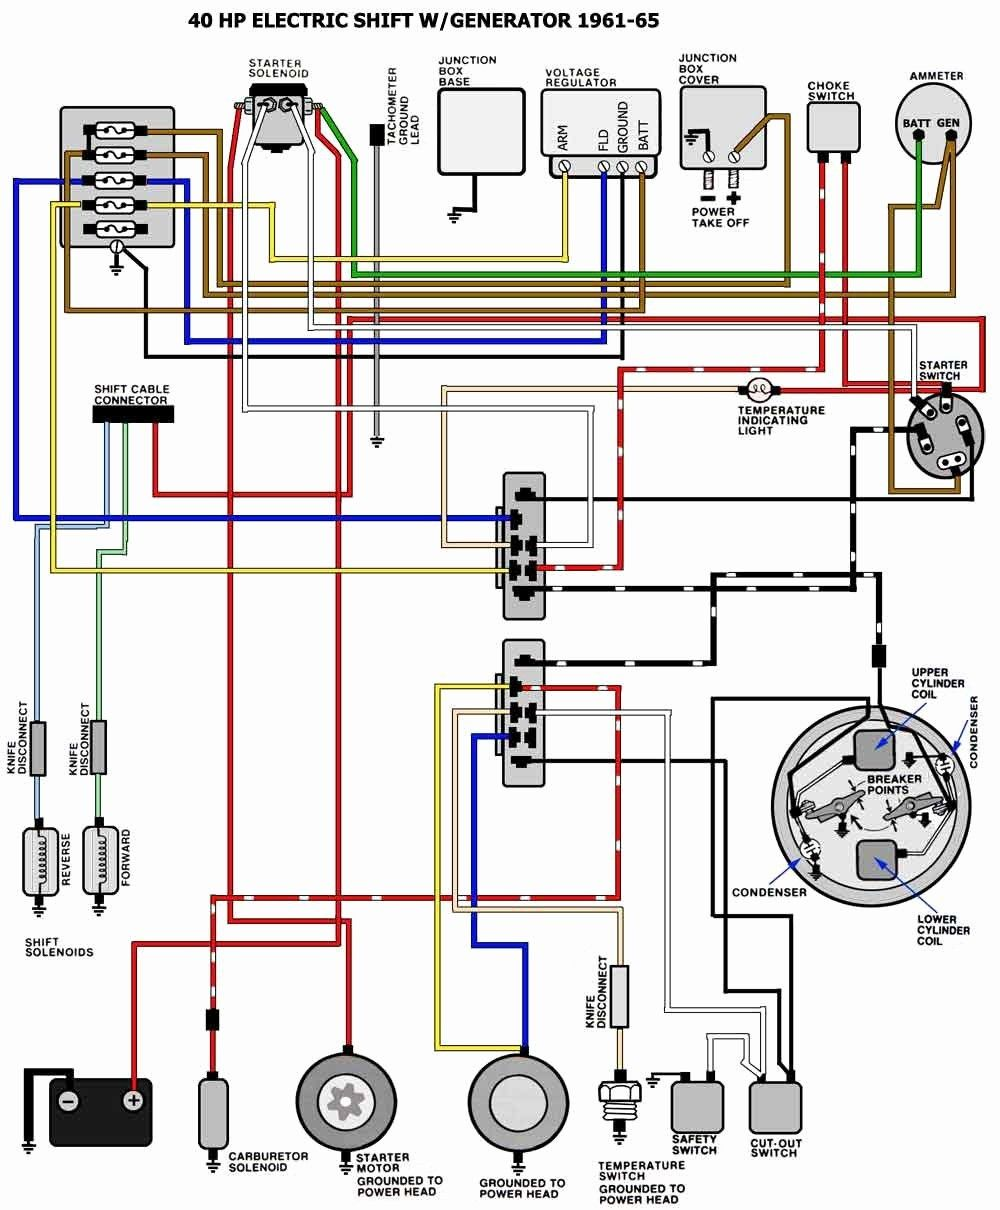 Mercury Outboard Power Trim Wiring Diagram : mercury, outboard, power, wiring, diagram, Mercury, Outboard, Wiring, Diagram, Outboard,, Wiring,